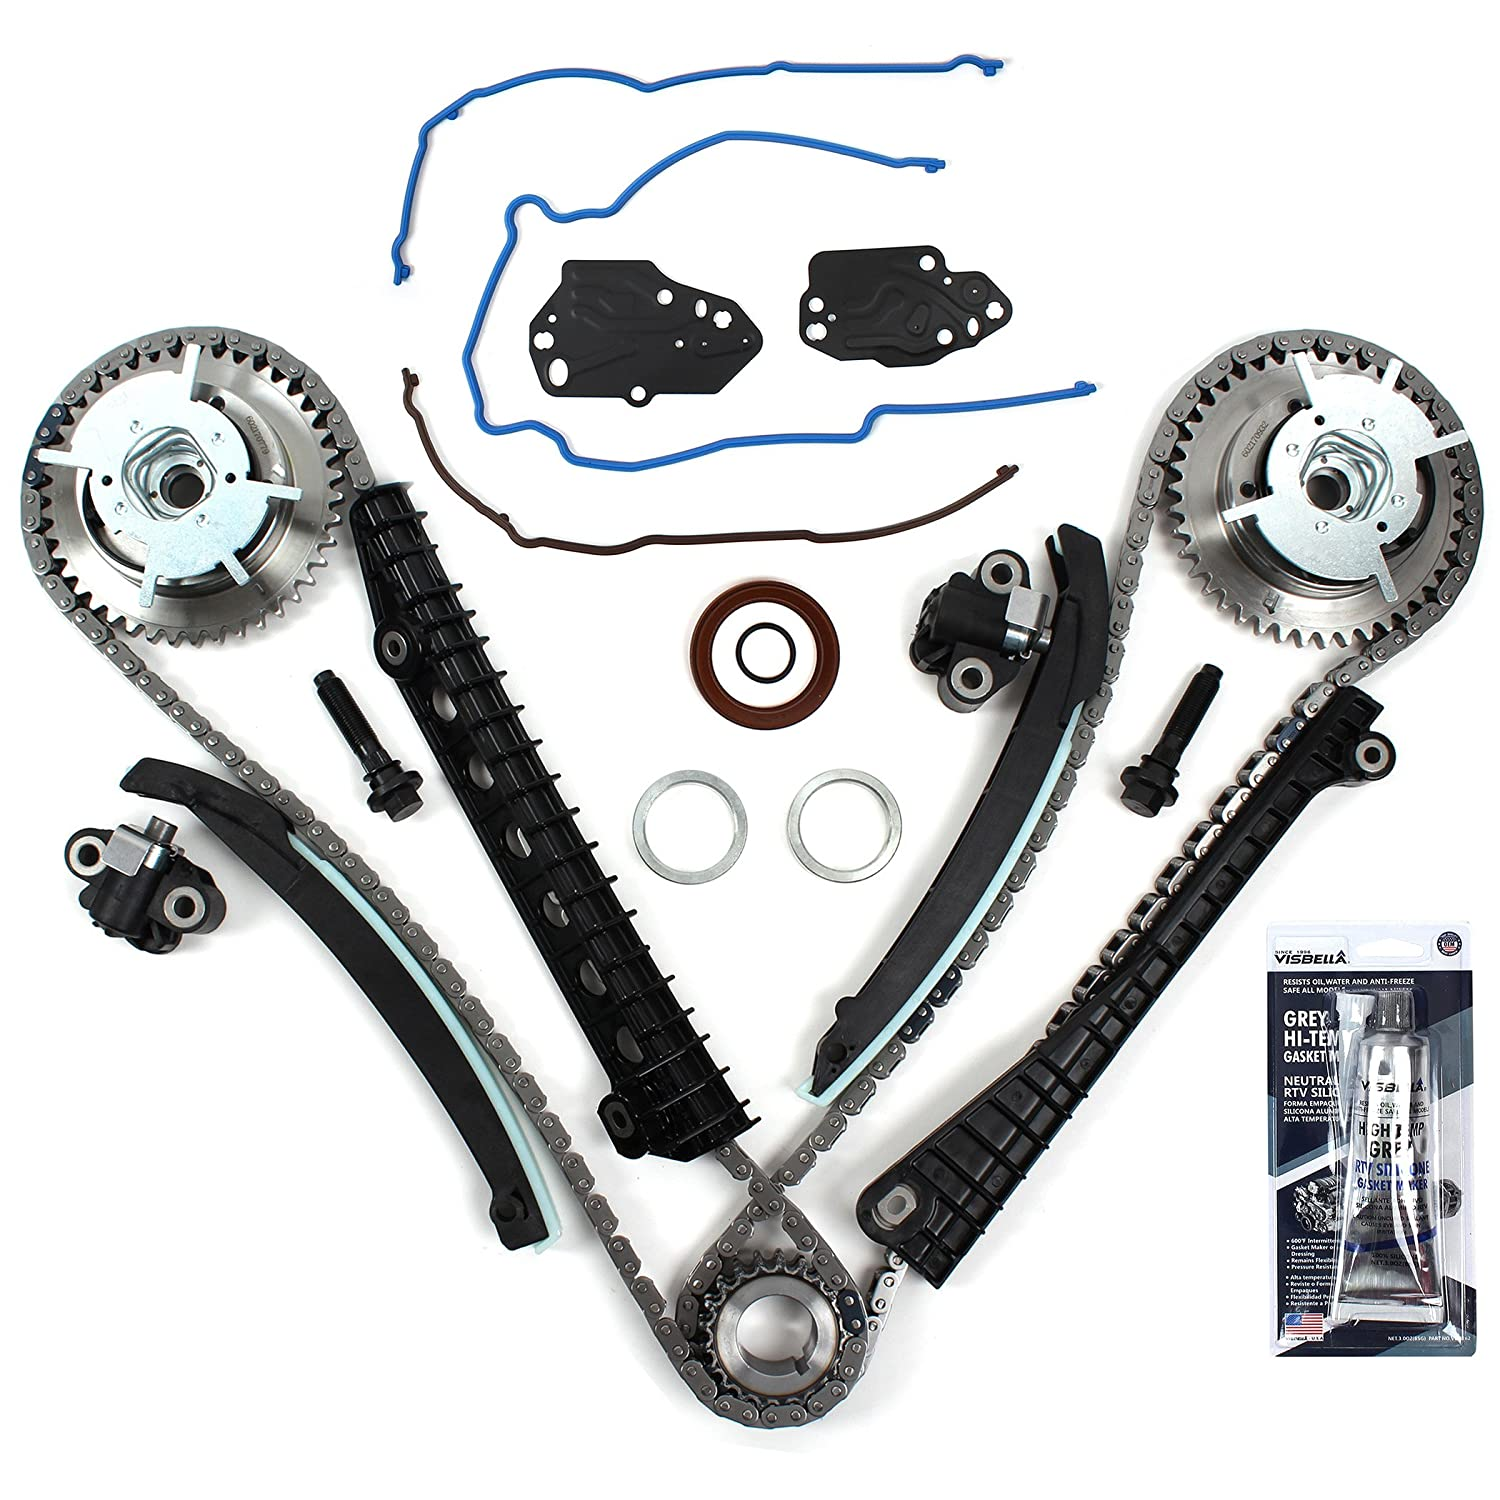 New ETCK460GSI Timing Chain Kit, Timing Cover Seals, Cam Phasers w/Mounting  Bolts